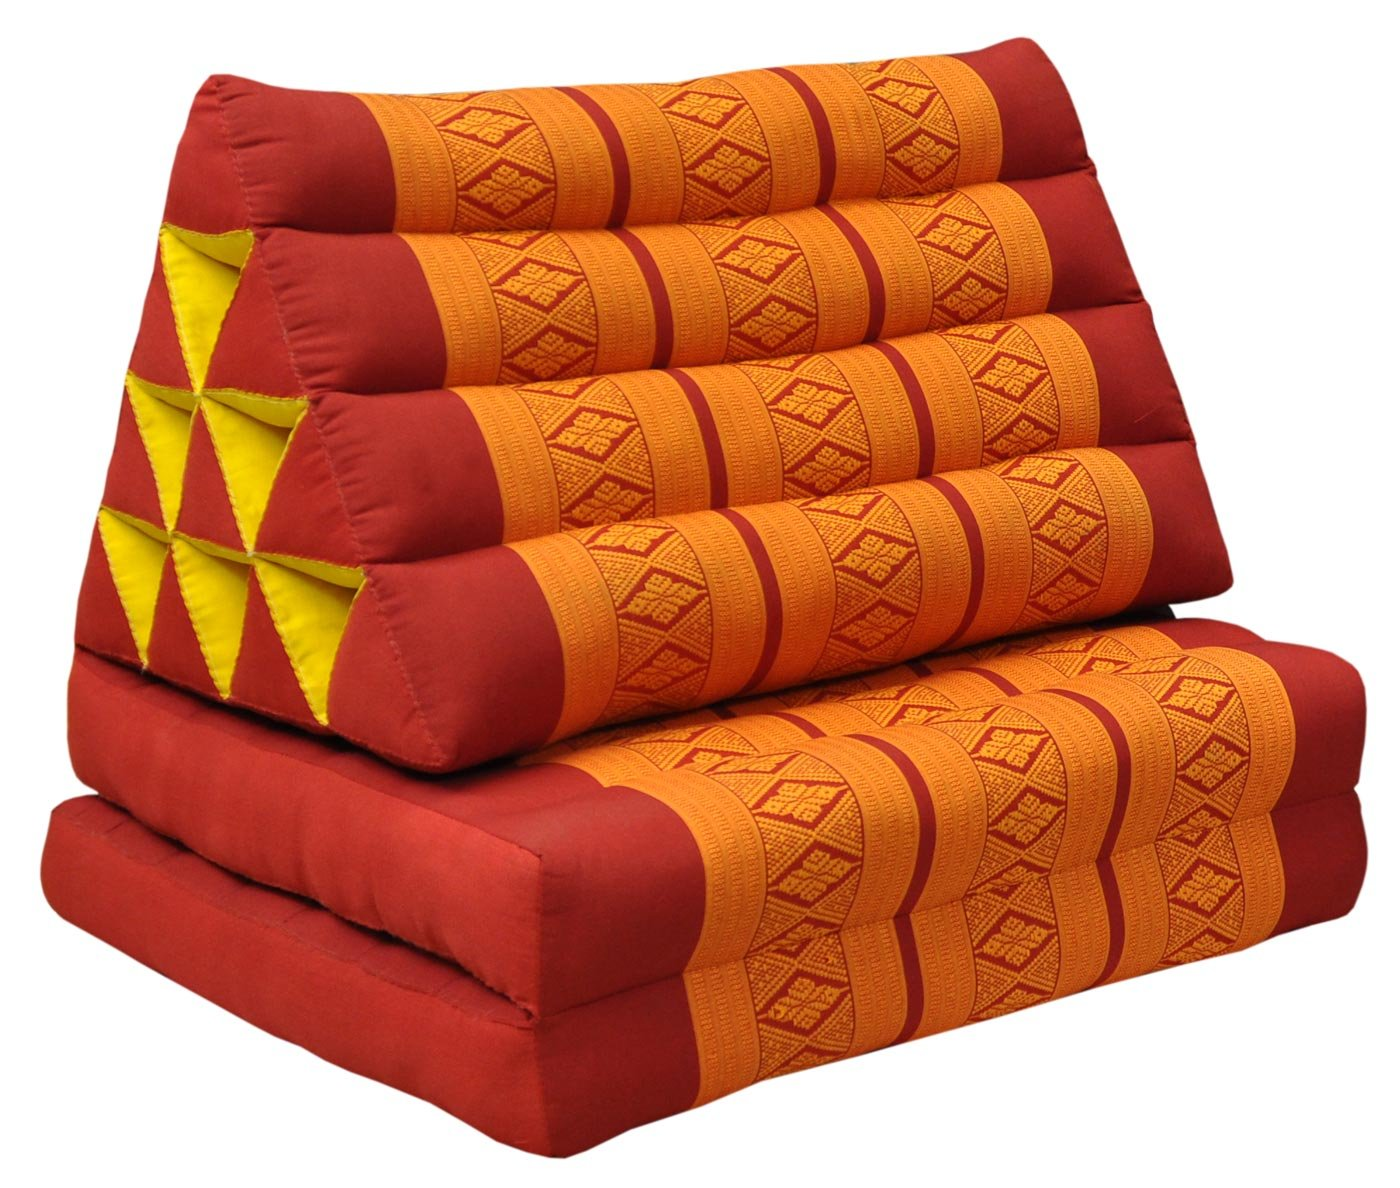 Thai triangular cushion with mattress 2 folds, red/orange, relaxation, beach, pool, meditation garden (81002) by Wilai GmbH